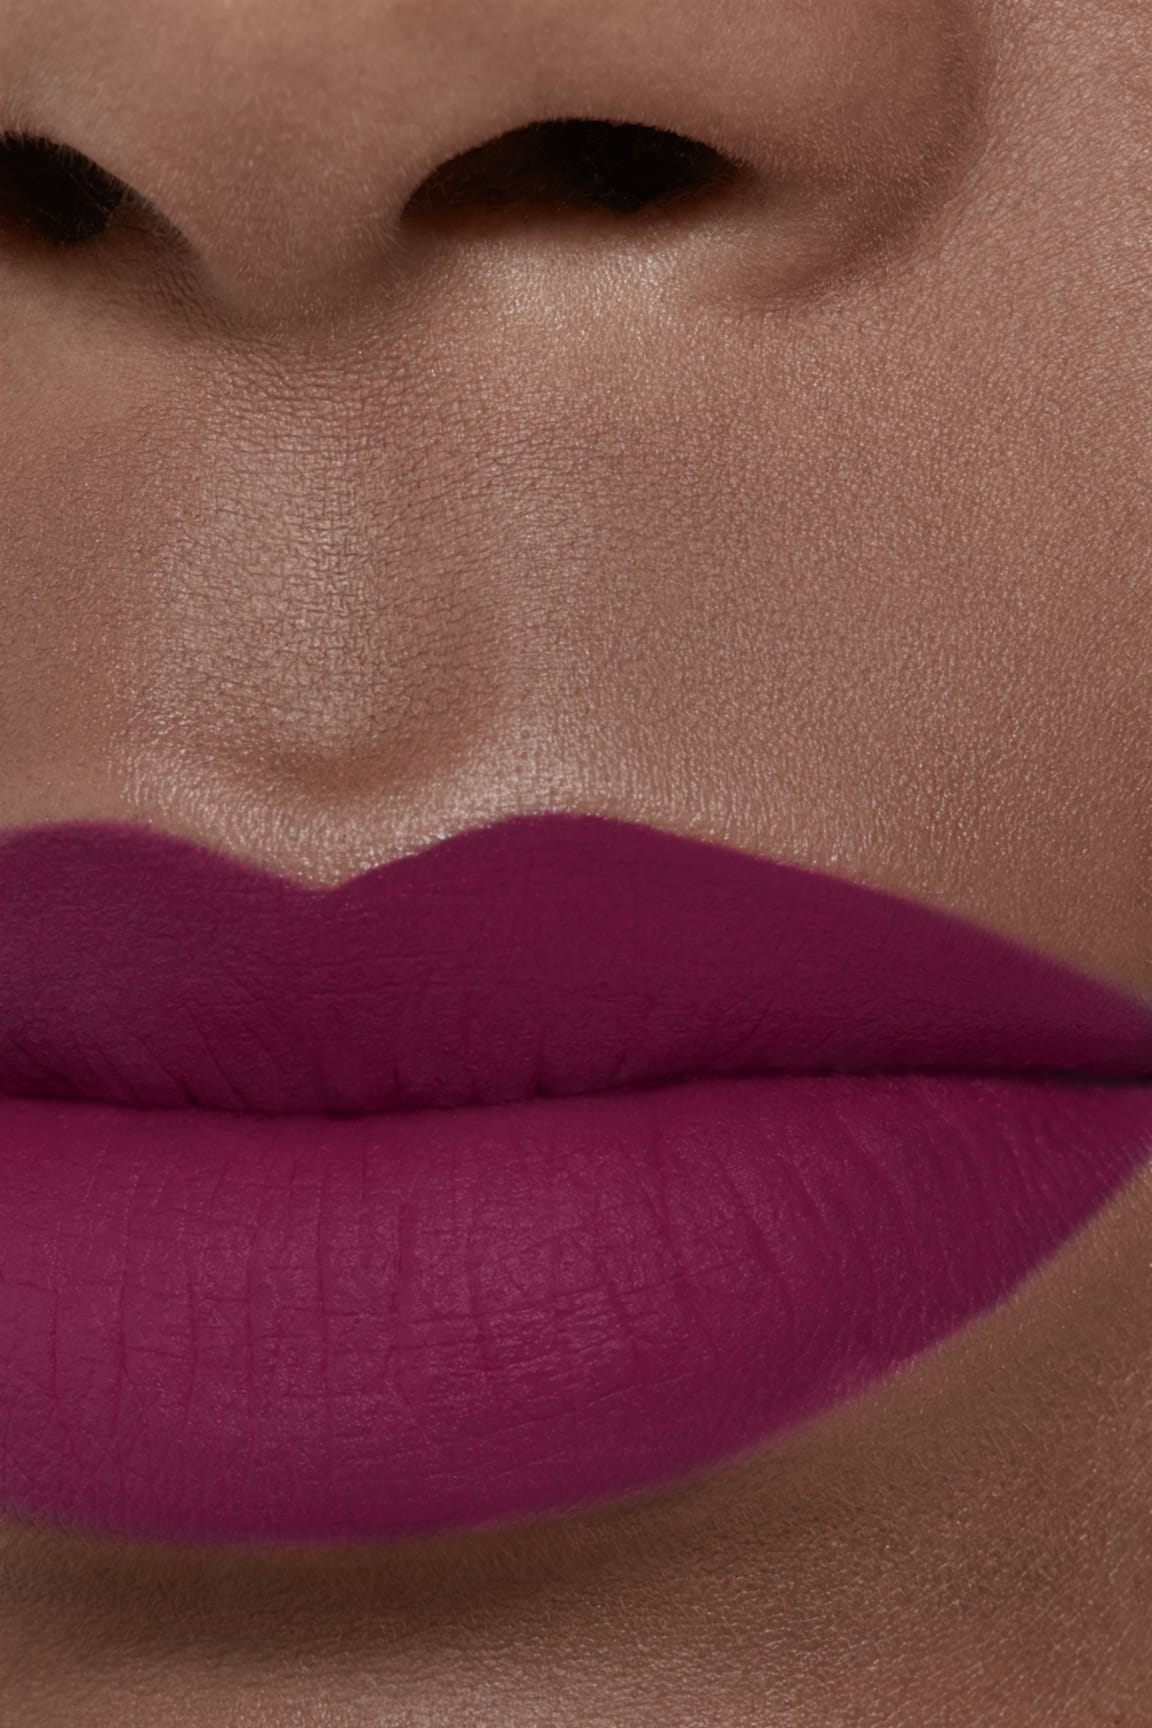 Application makeup visual 2 - ROUGE ALLURE VELVET EXTRÊME 124 - MUTED FUCHSIA